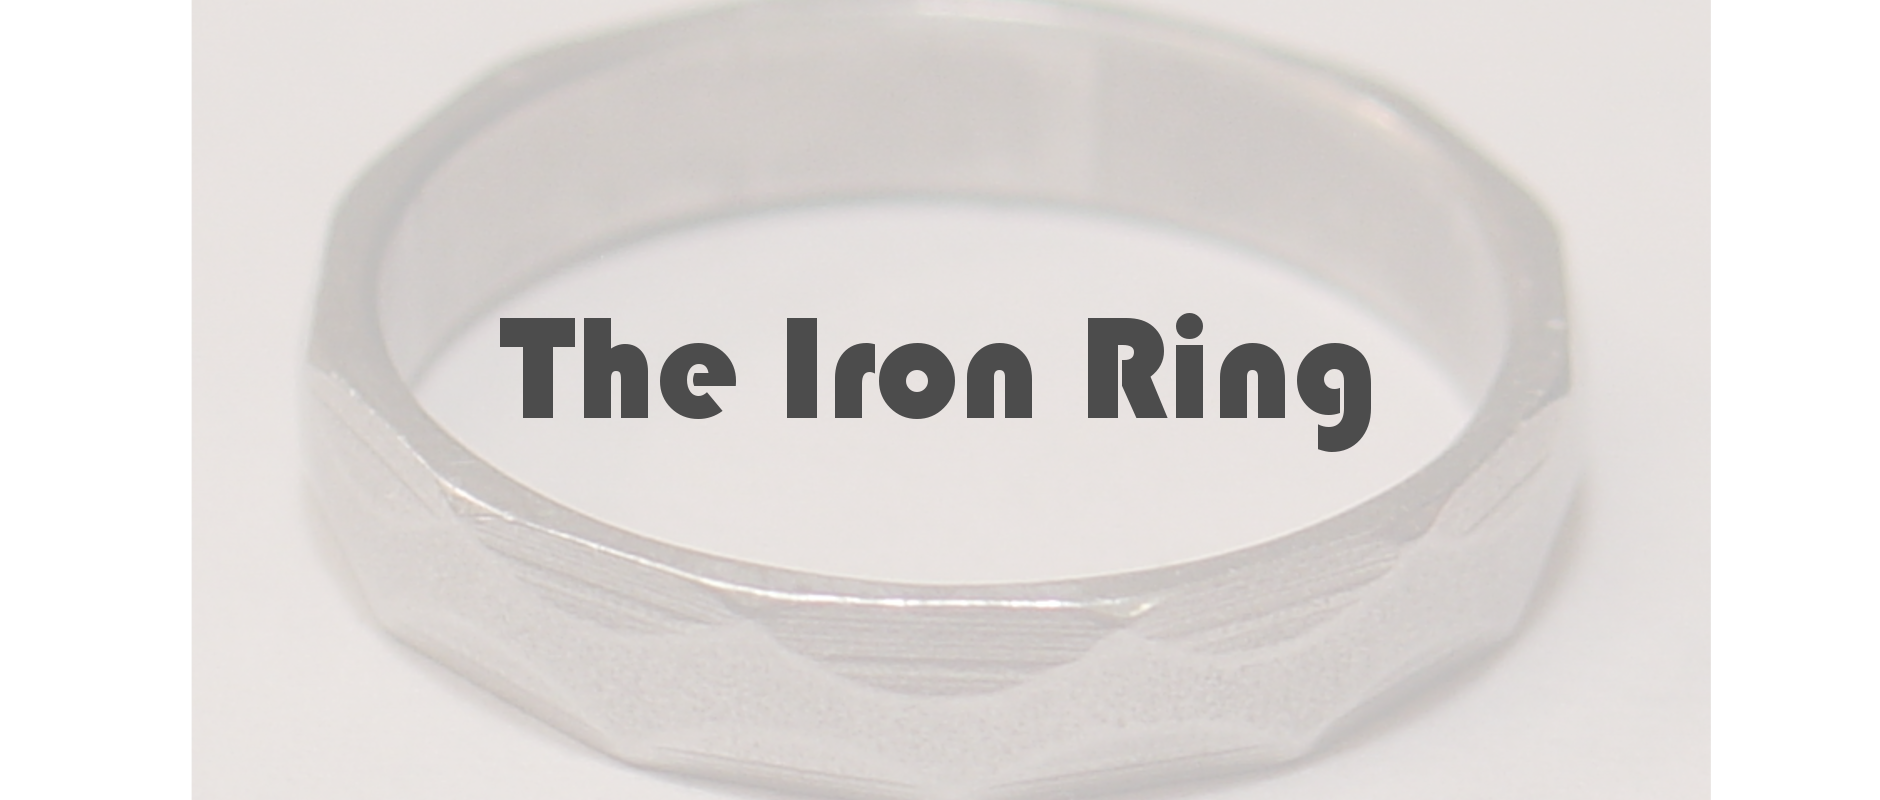 Iron Ring Reflection: Chrissy Ure